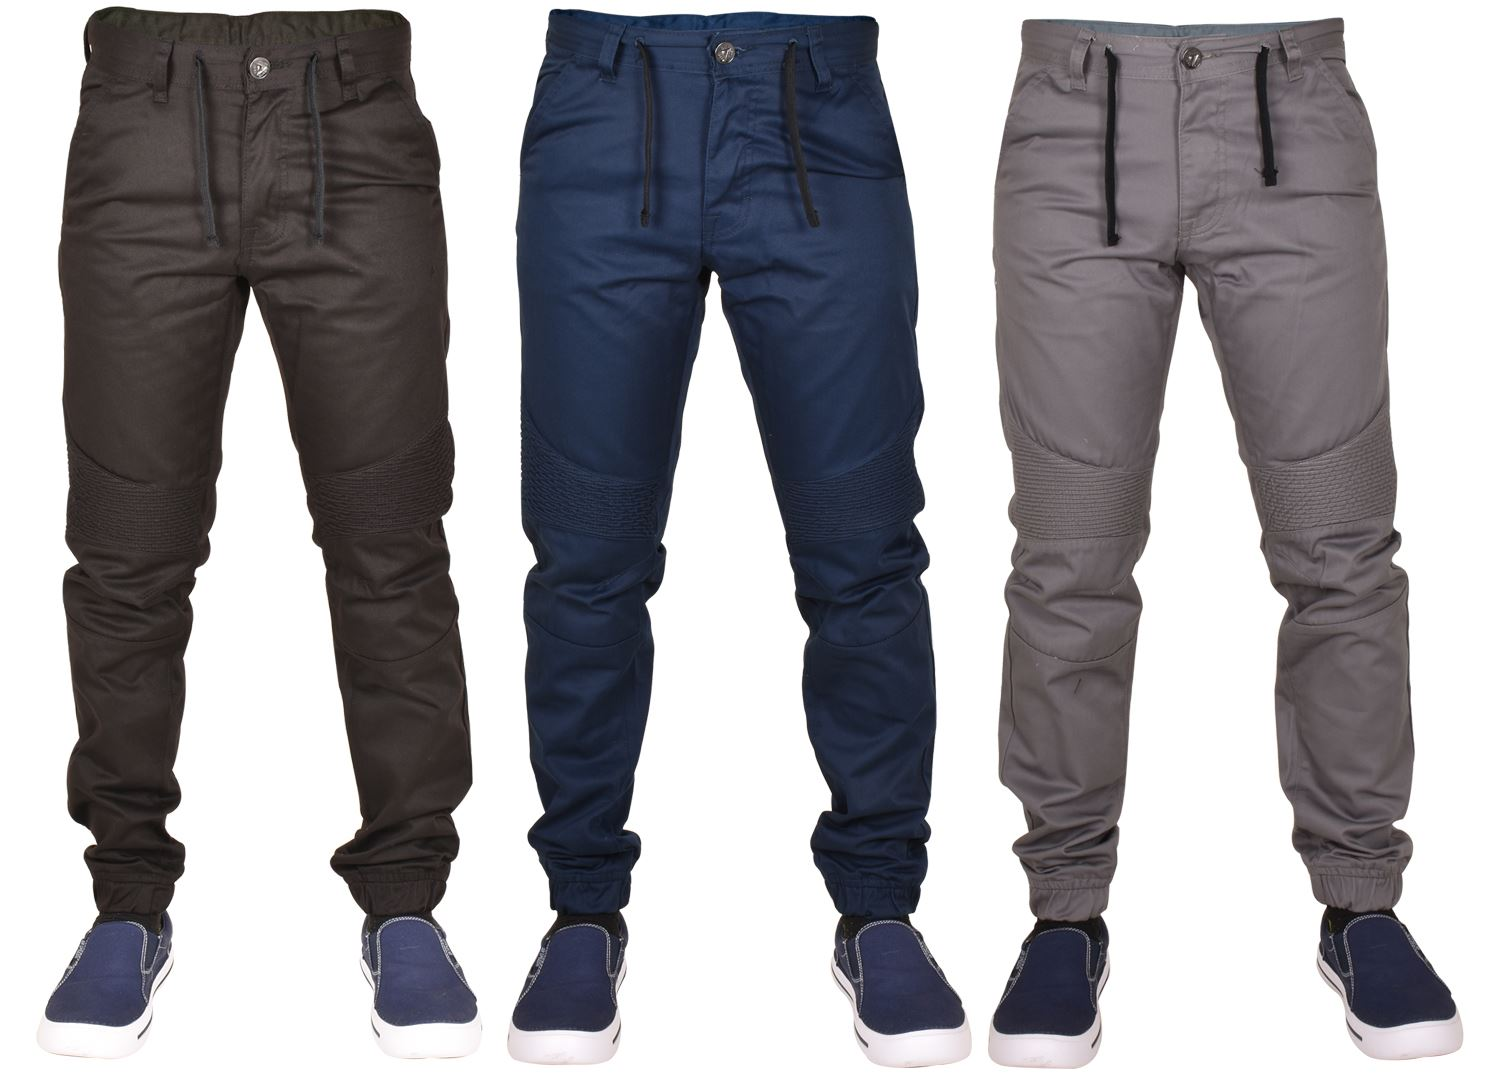 New Enzo Mens Cuffed Chinos Jeans Slim Fit Denim Designer Joggers Trousers Pants